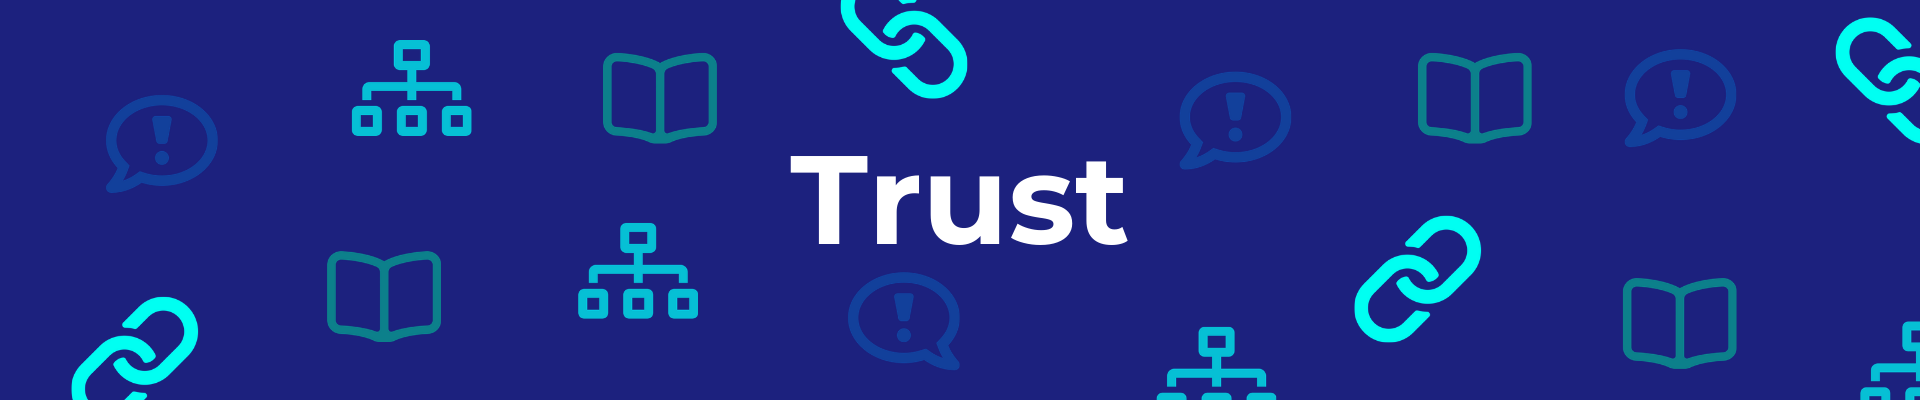 Trust Category Banner